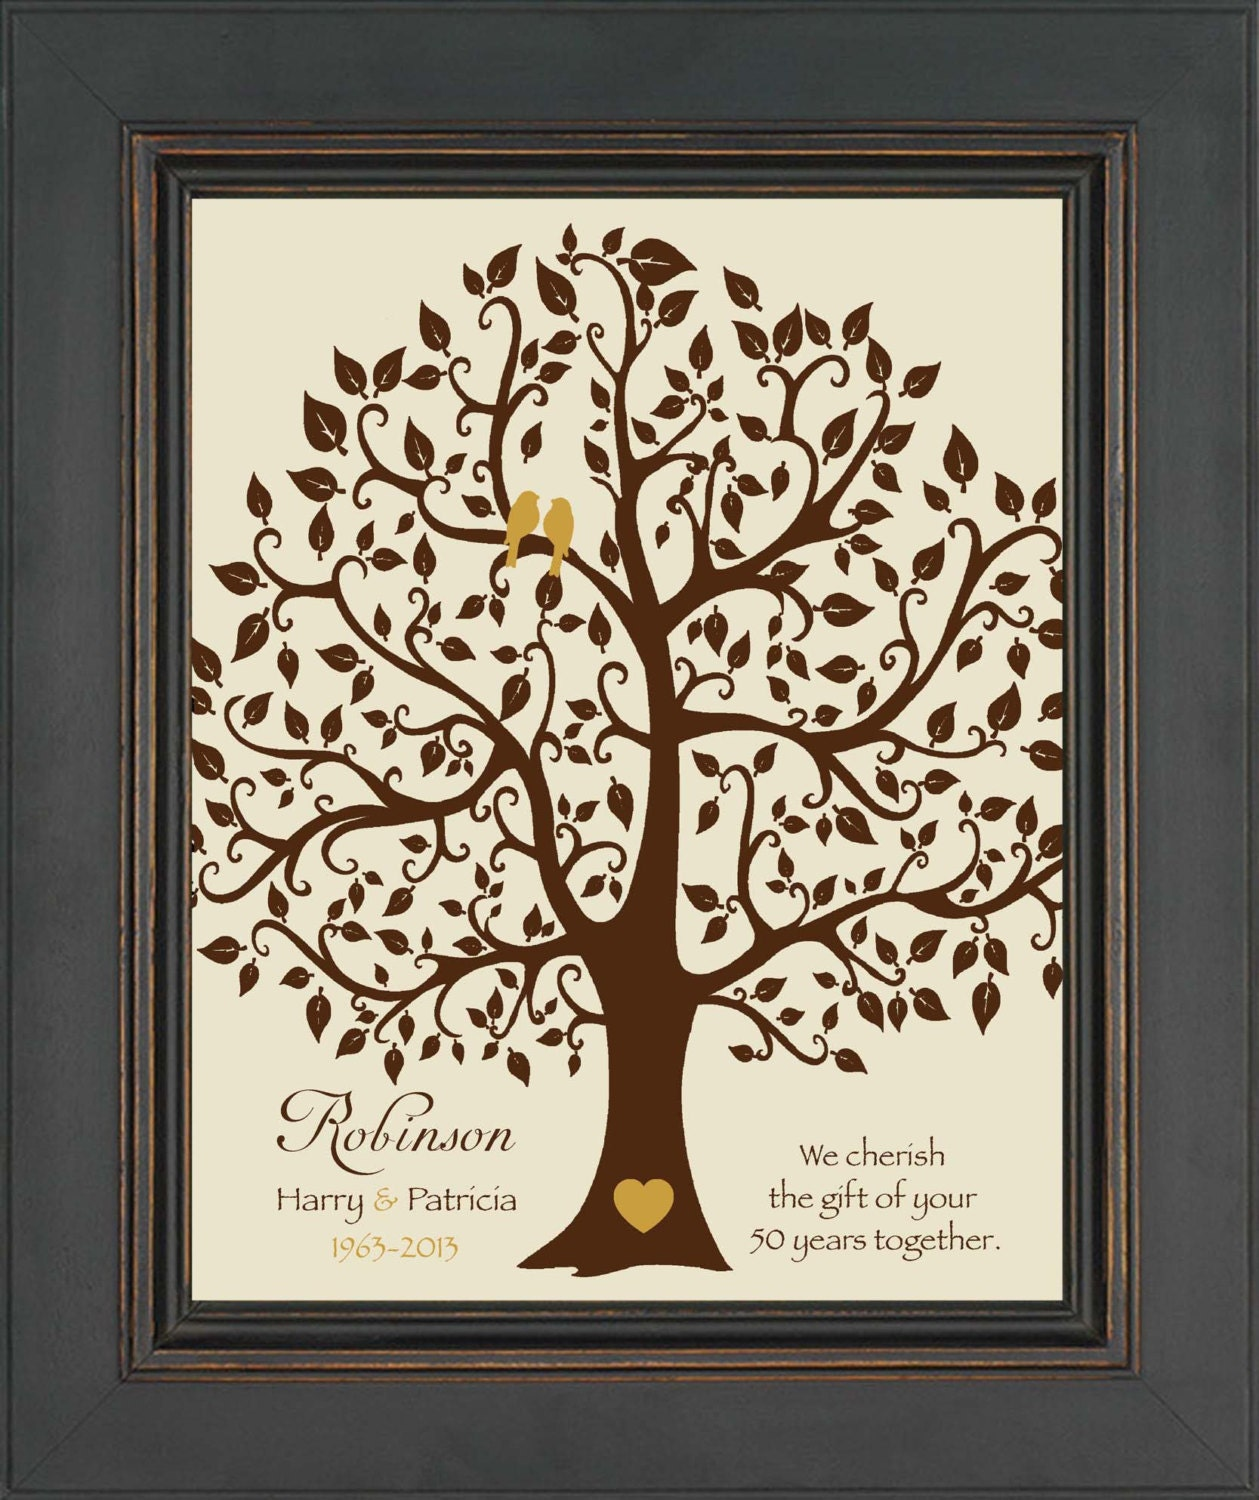 What Is The Traditional Wedding Anniversary Gifts: 50th Wedding Anniversary Gift Print Parents Anniversary Gift